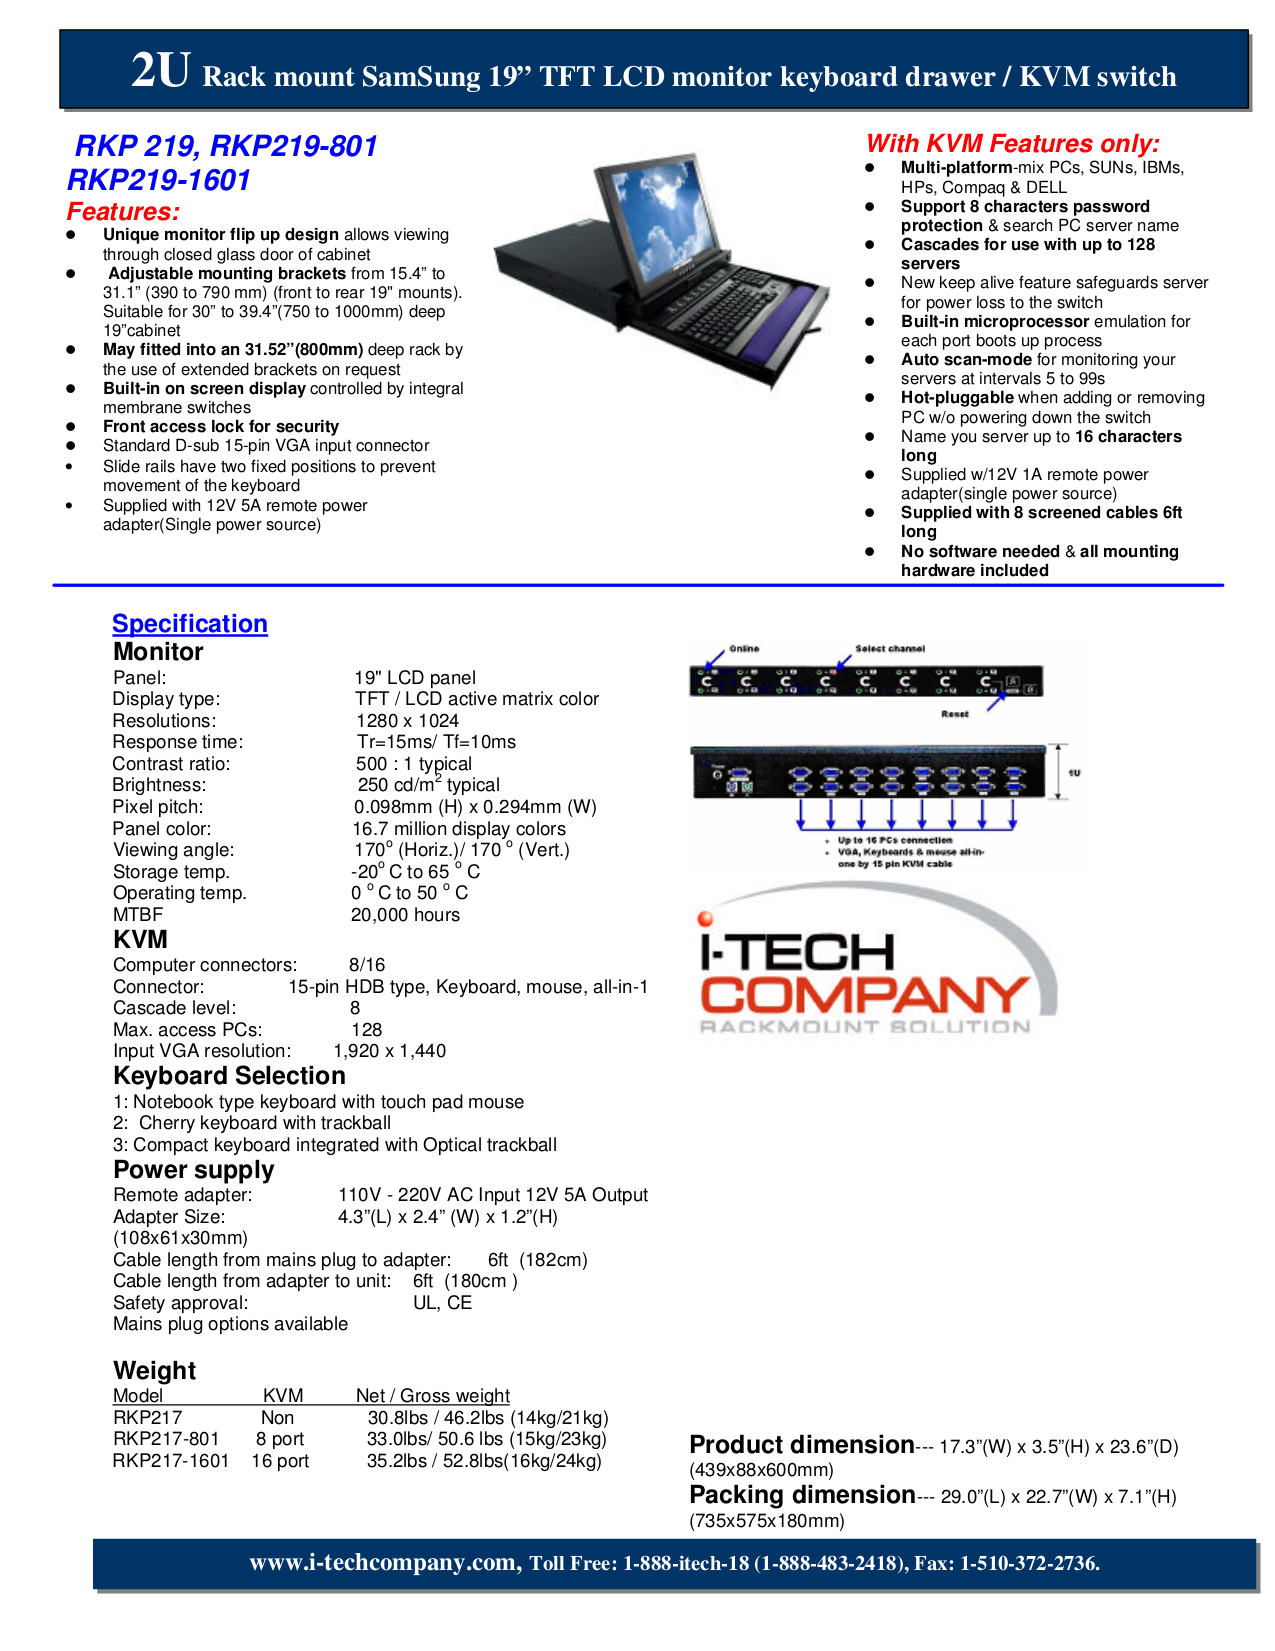 pdf for I-Tech Other RKP219-1601 Keyboard Drawers manual